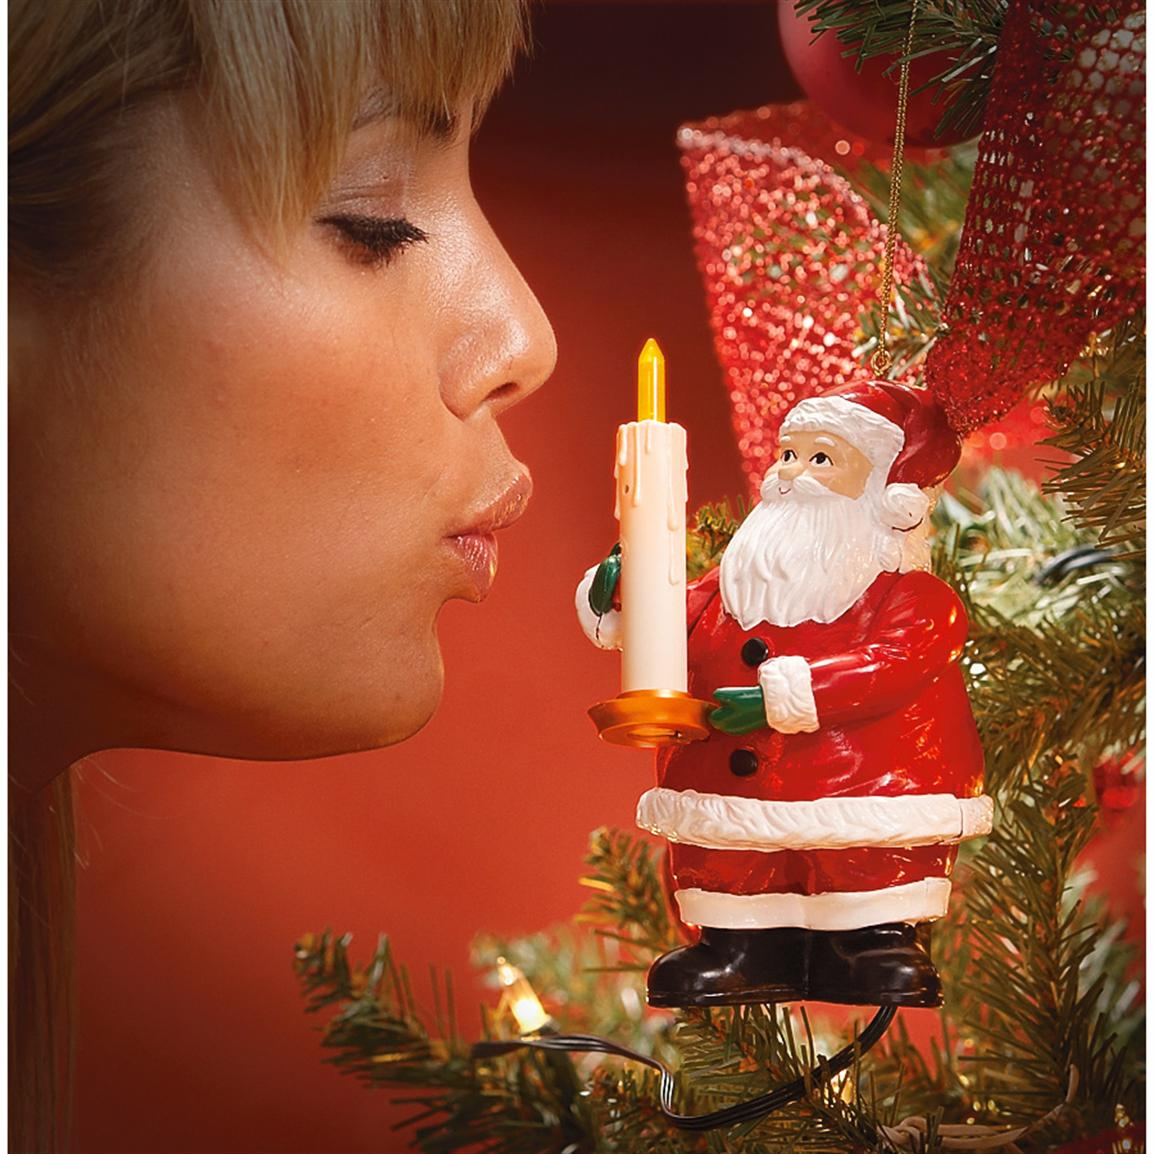 Good Night Lights® Santa Switch; Quick blow on candle, tree lights go out.  Blow again and they go on.